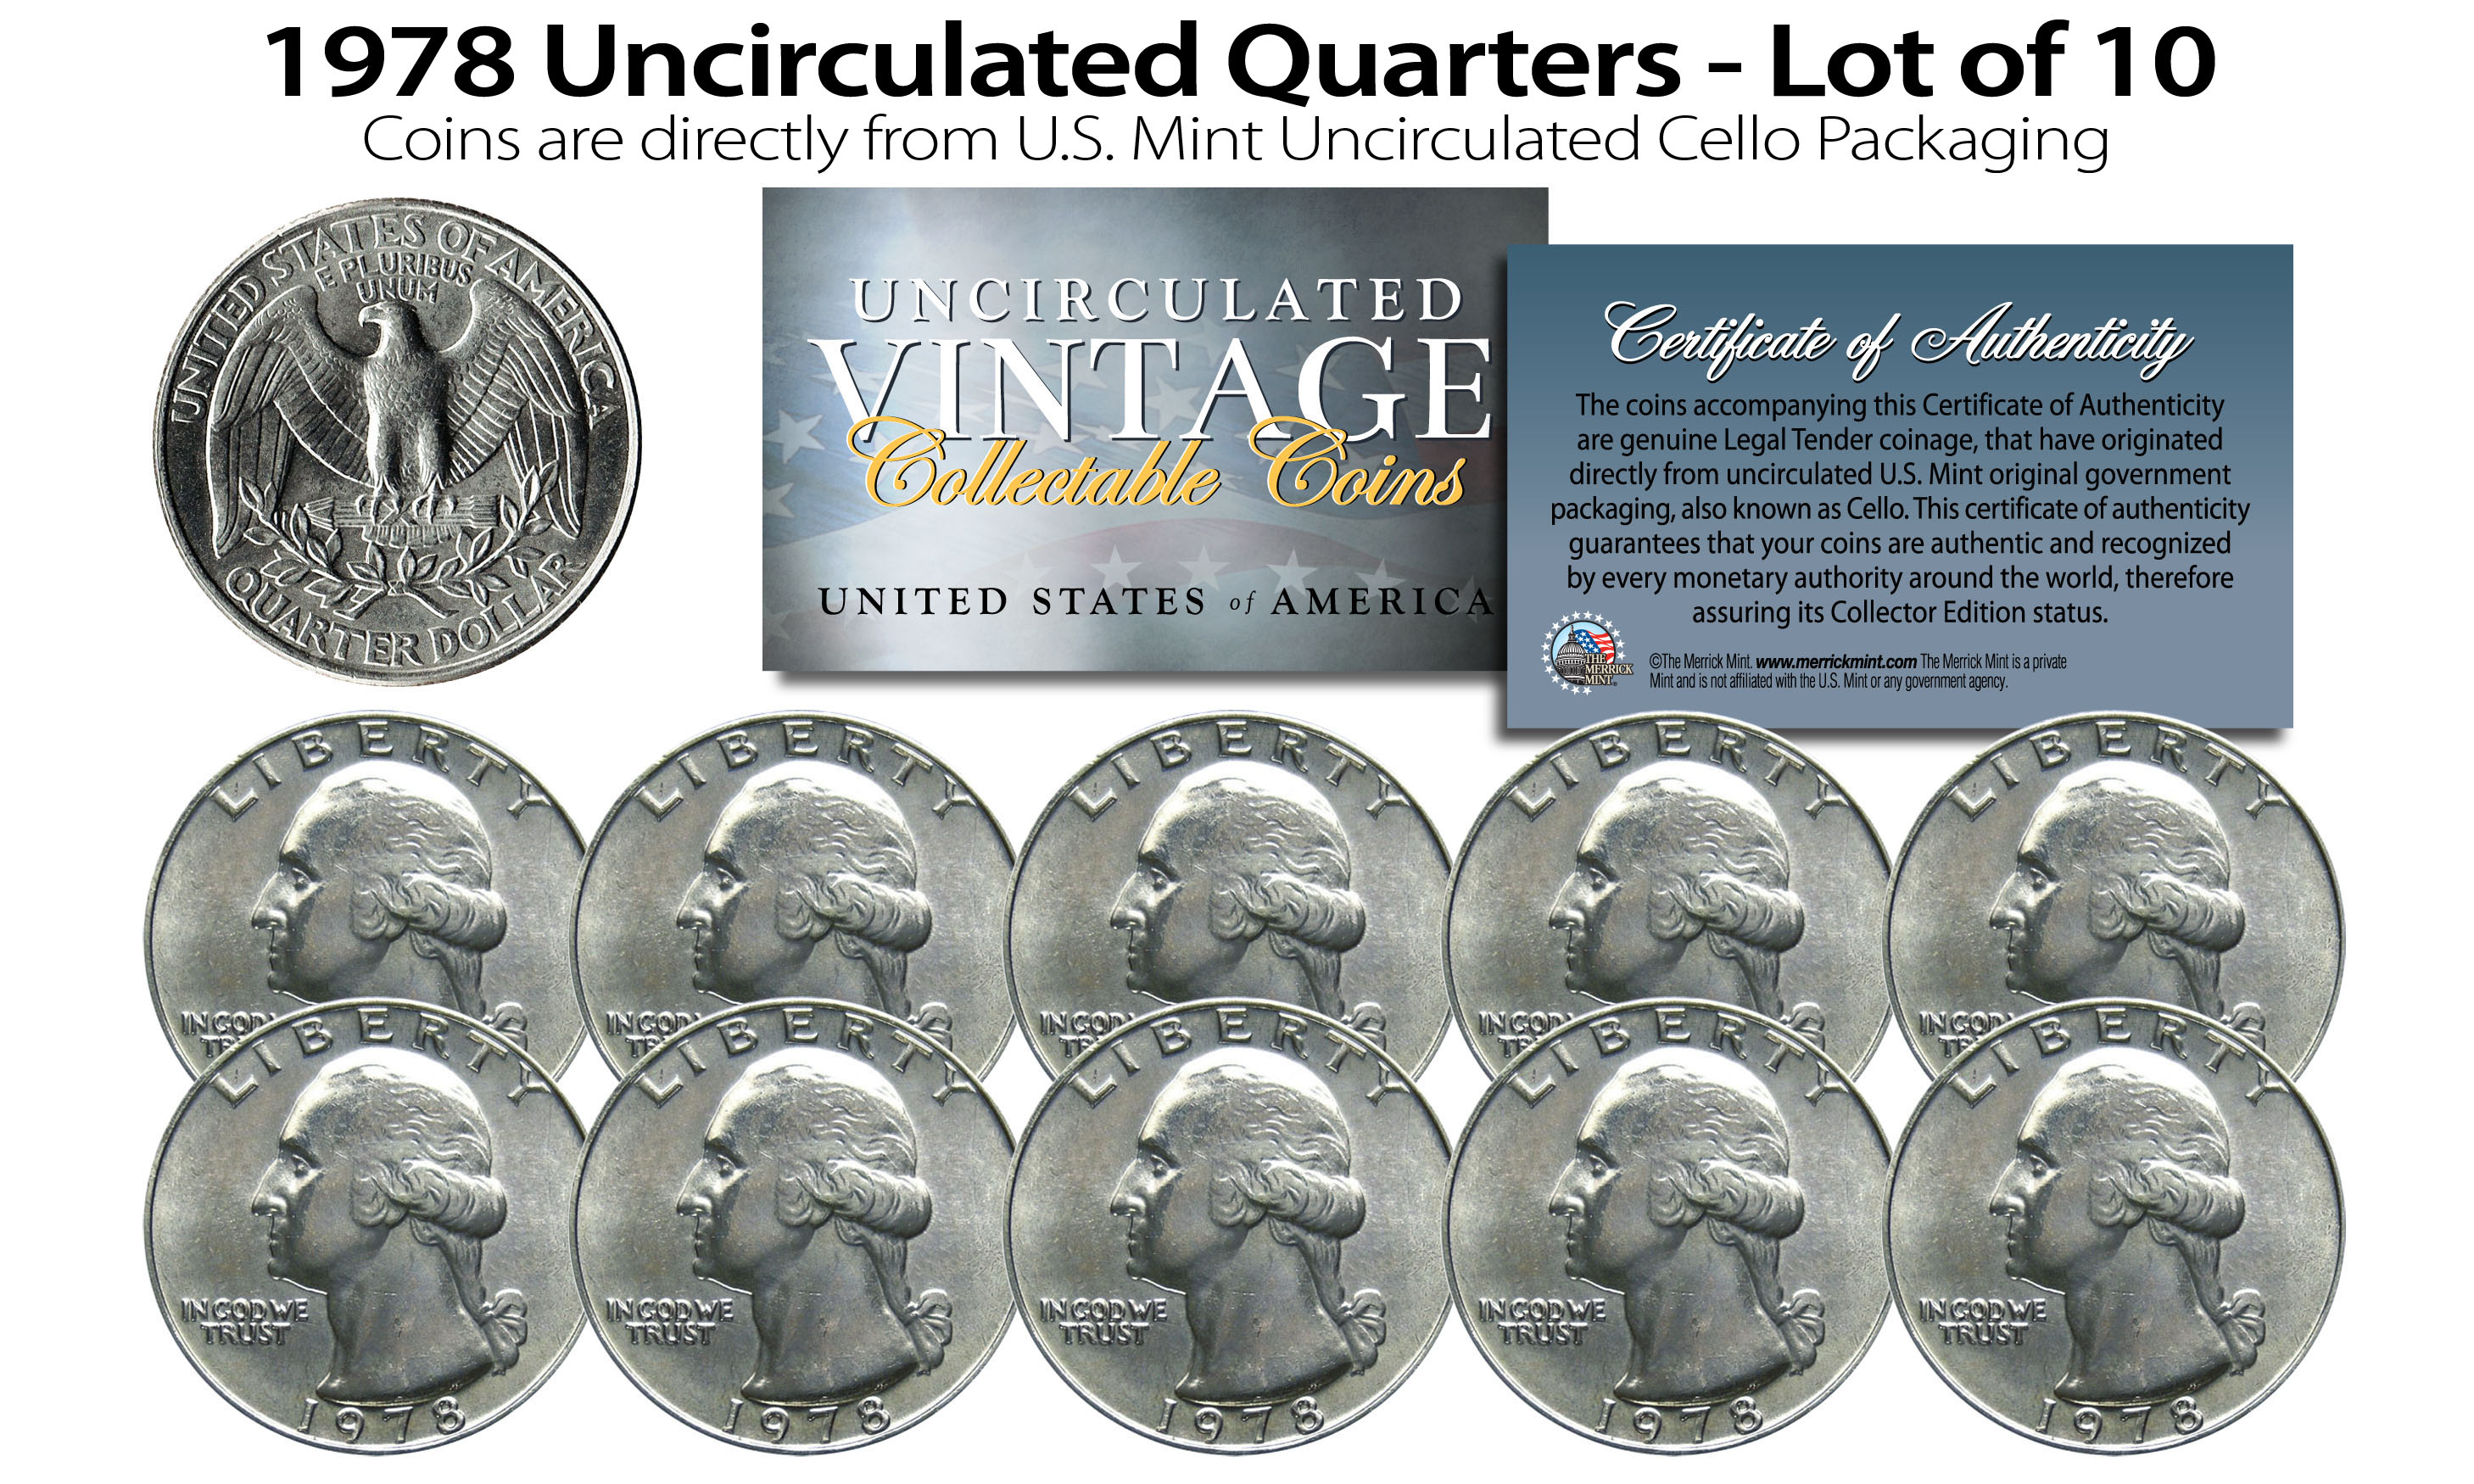 MINT 1978 UNCIRCULATED Genuine U.S MINT SETS ISSUED BY U.S